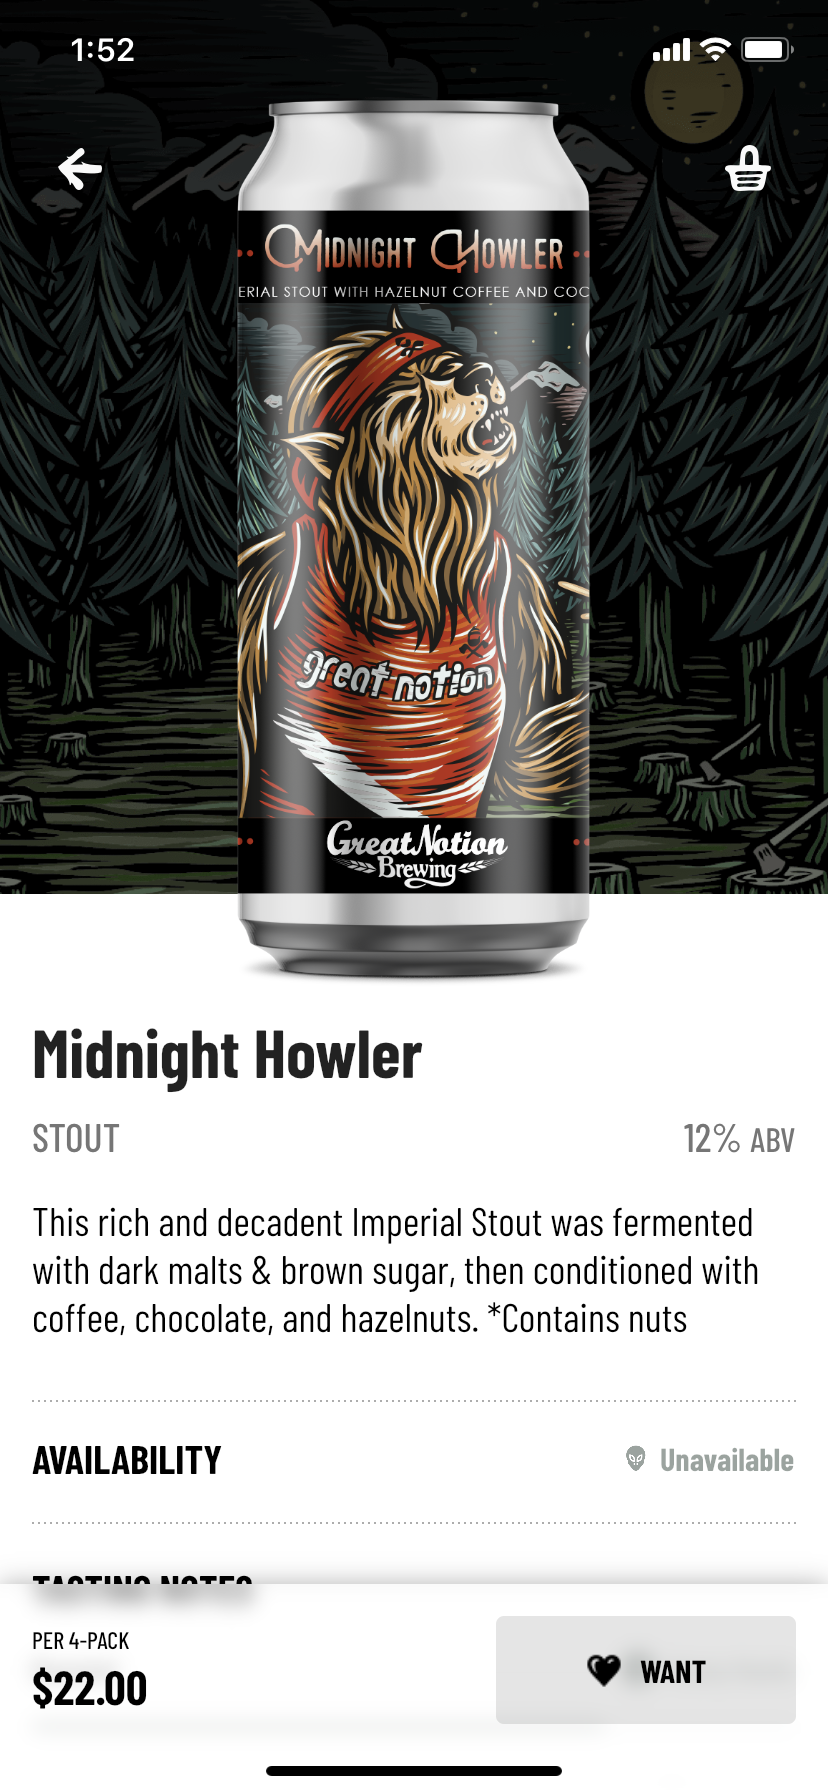 Midnight Howler Stout on the Great Notion Brewing app.